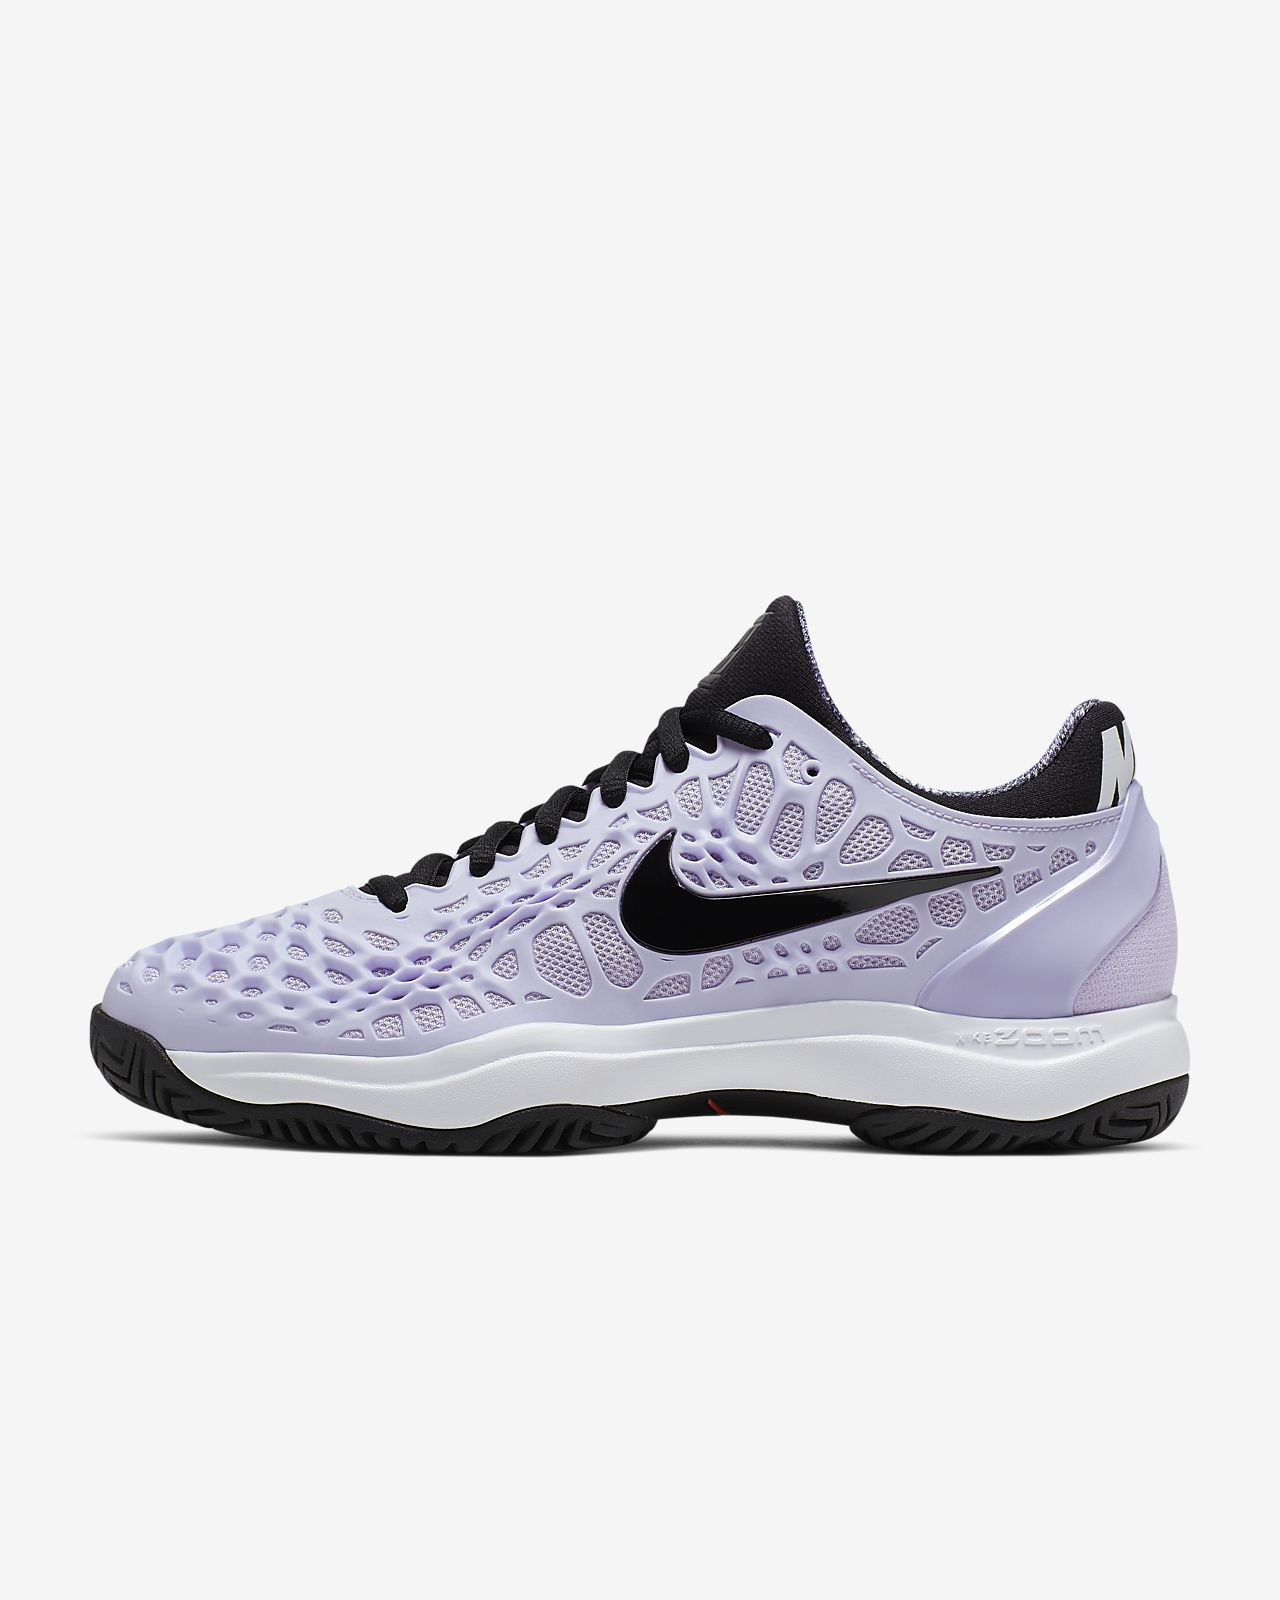 innovative design 2b407 c7e39 Women s Hard Court Tennis Shoe. NikeCourt Zoom Cage 3